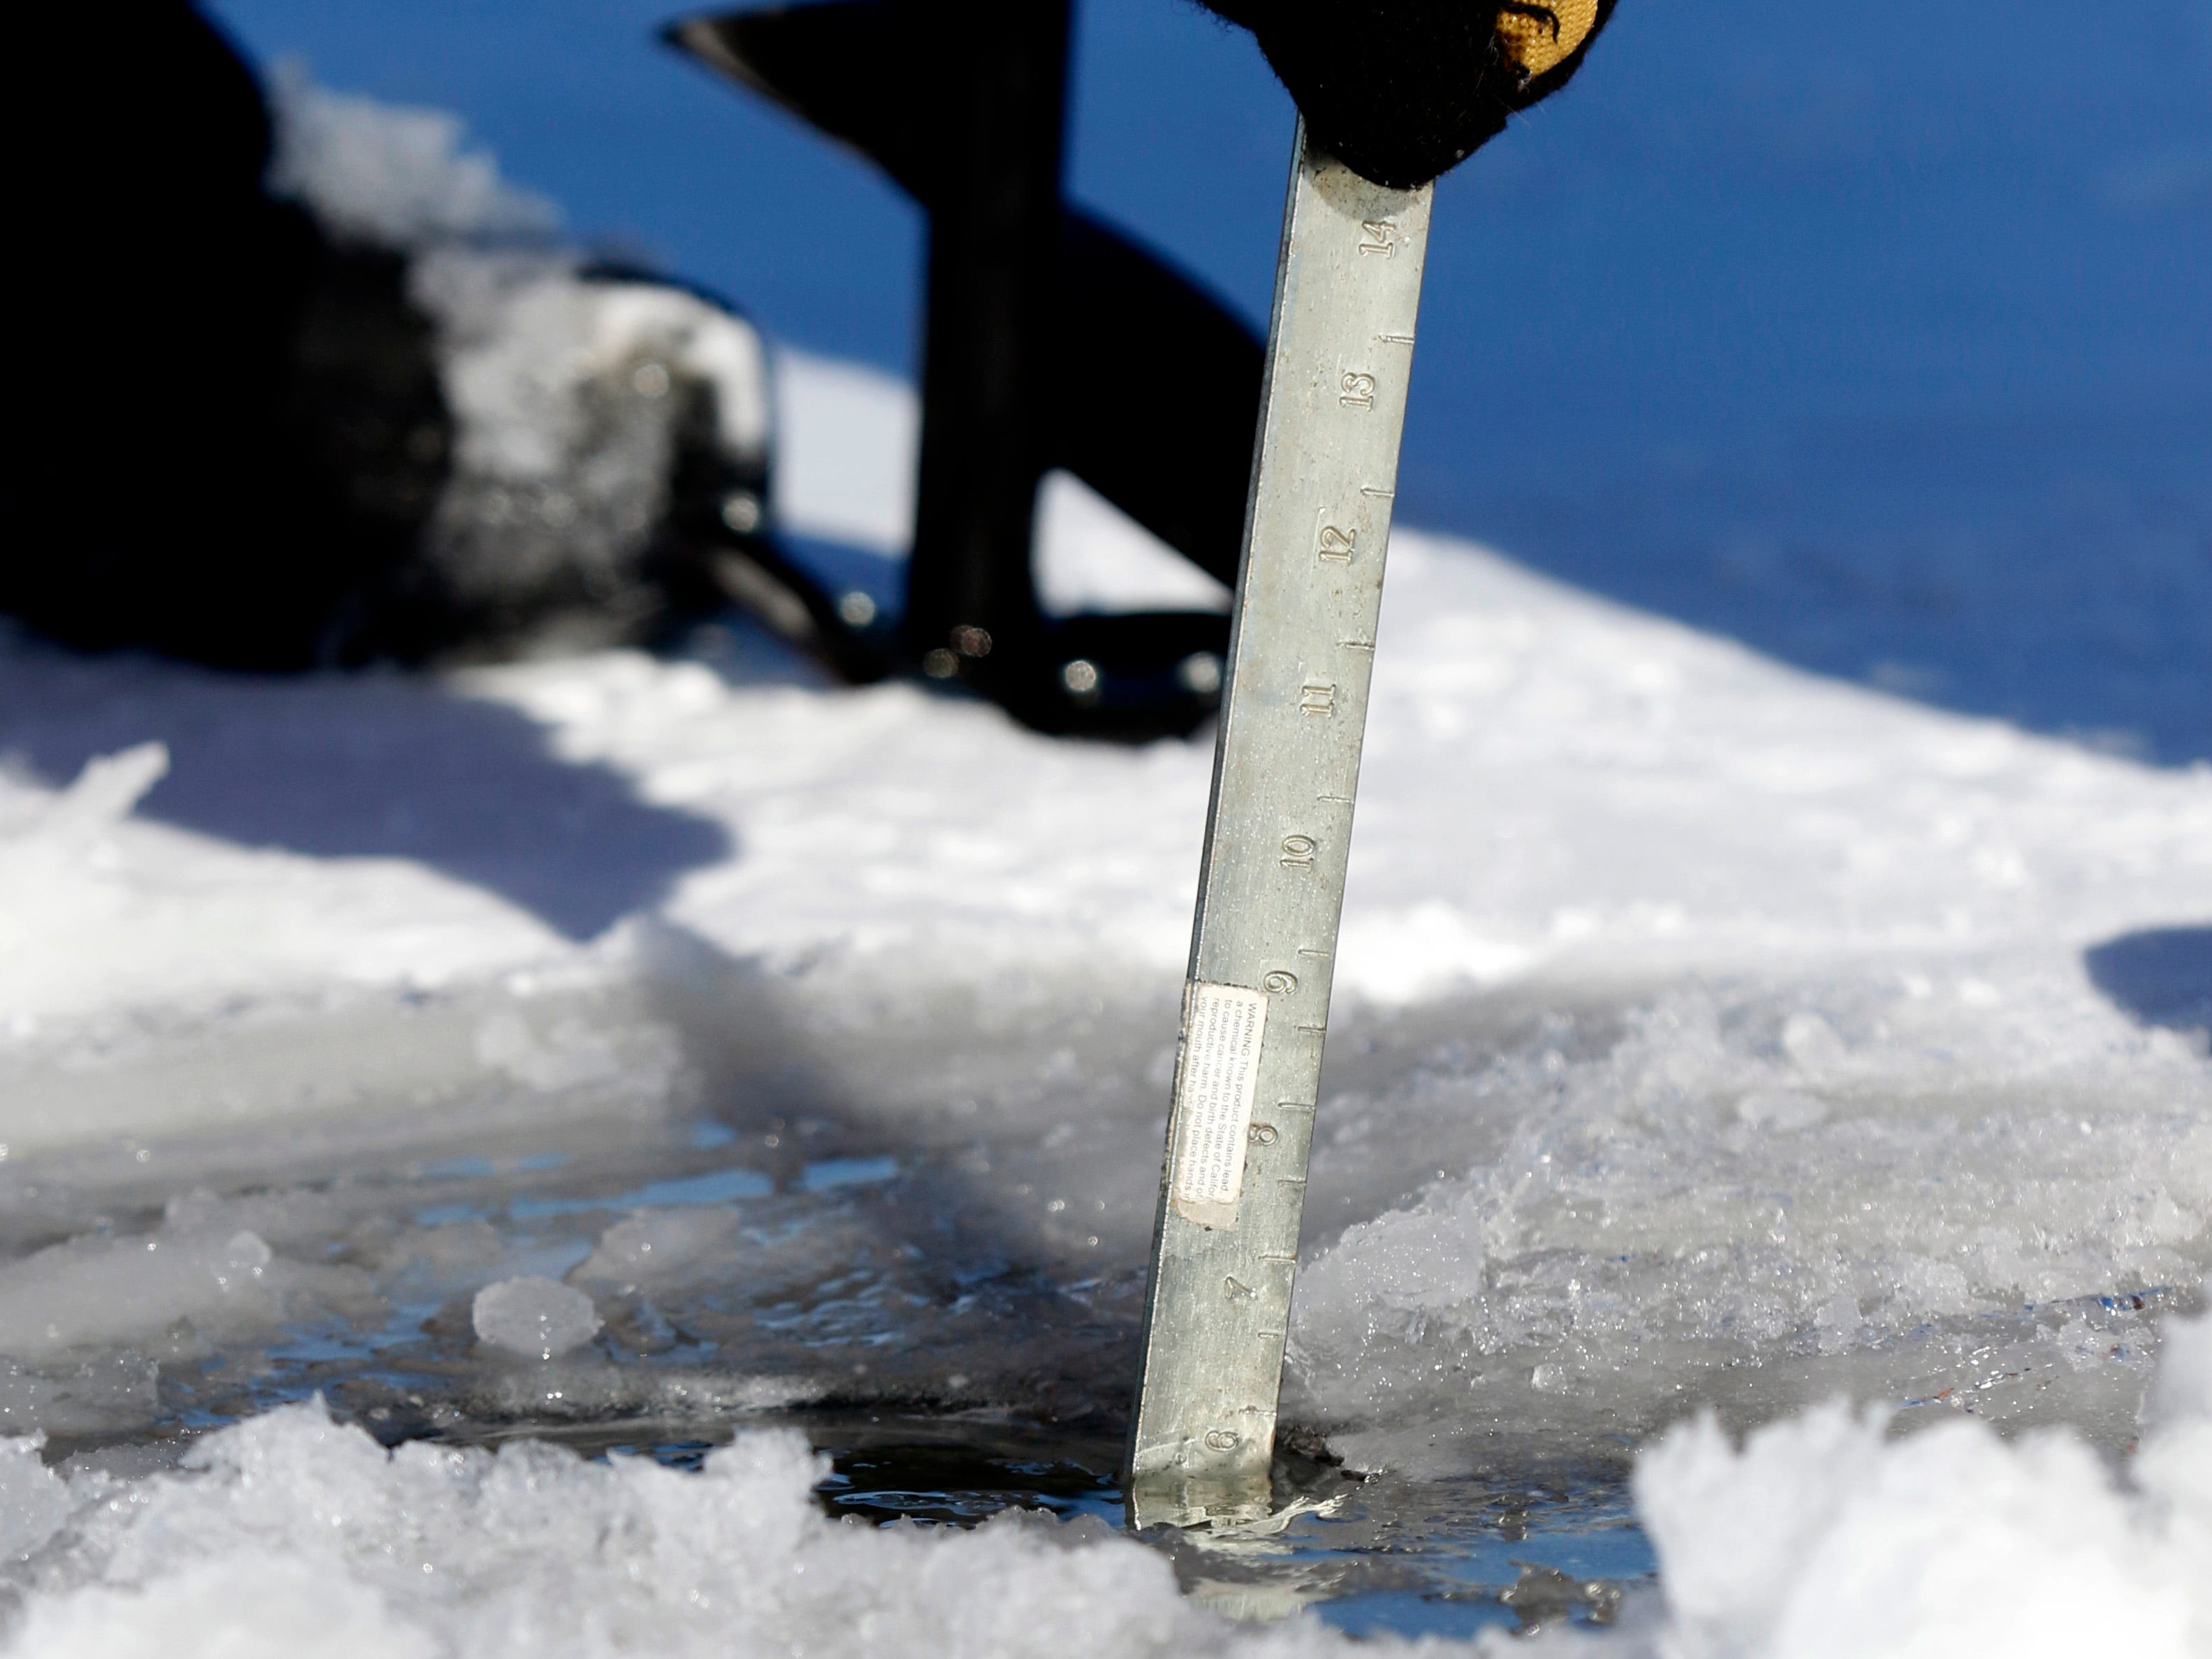 Dude Naeder, from Hamilton Township, uses a dipper to measure the thickness of the ice Thursday morning, Jan. 31, 2019, on Buckeye Lake. Freezing temperatures this week have formed more than five inches of ice on the lake's surface, and despite single digit temperatures and a wind chill advisory several people took the opportunity to ice fish.